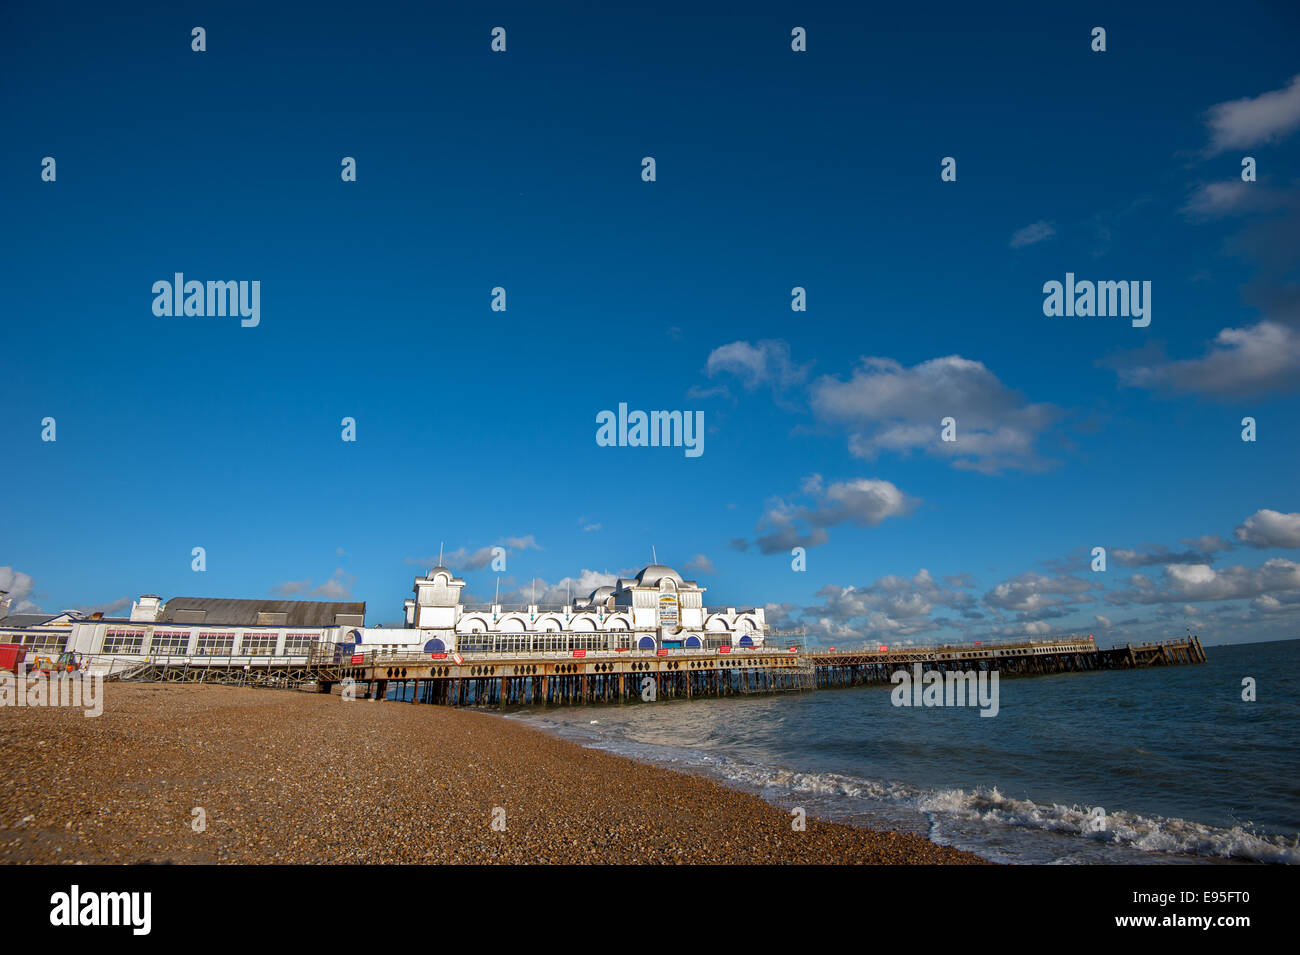 Repair work goes on on South Parade Pier, Southsea seafront Stock Photo